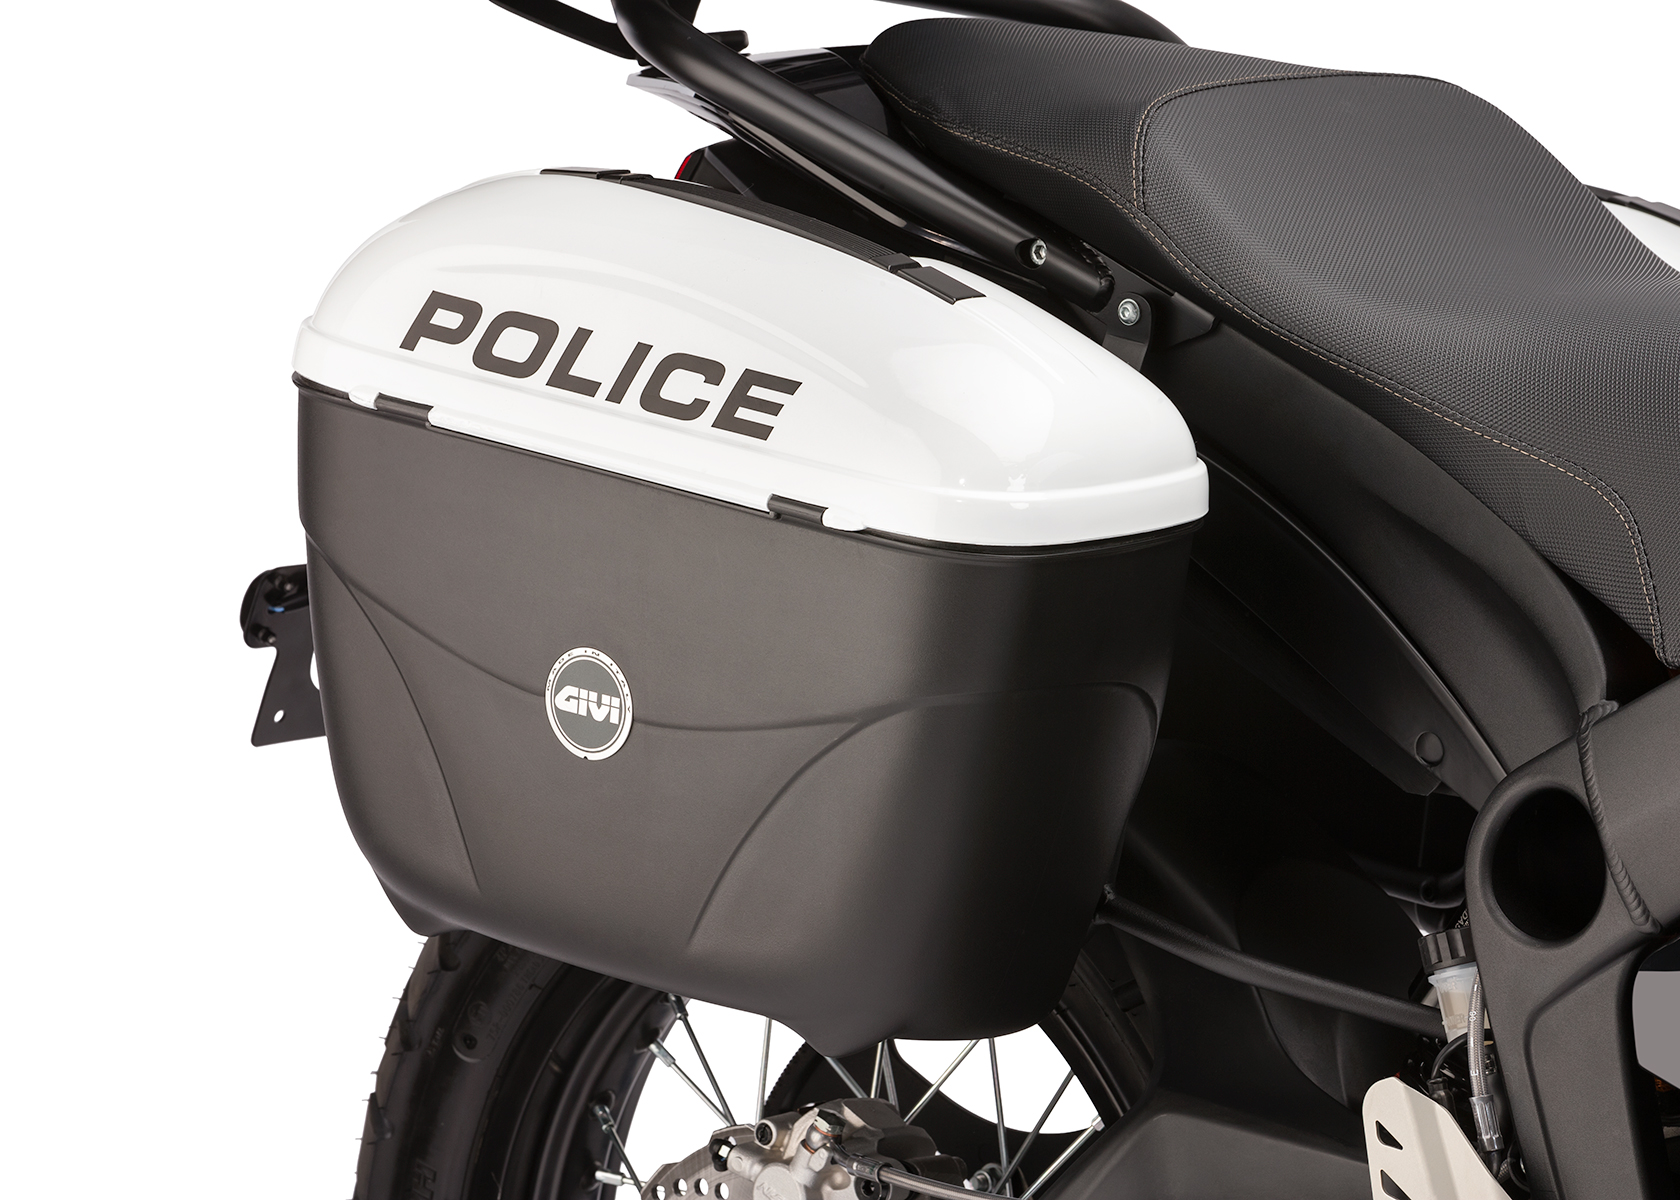 2013 Zero Police Electric Motorcycle: Saddle bag